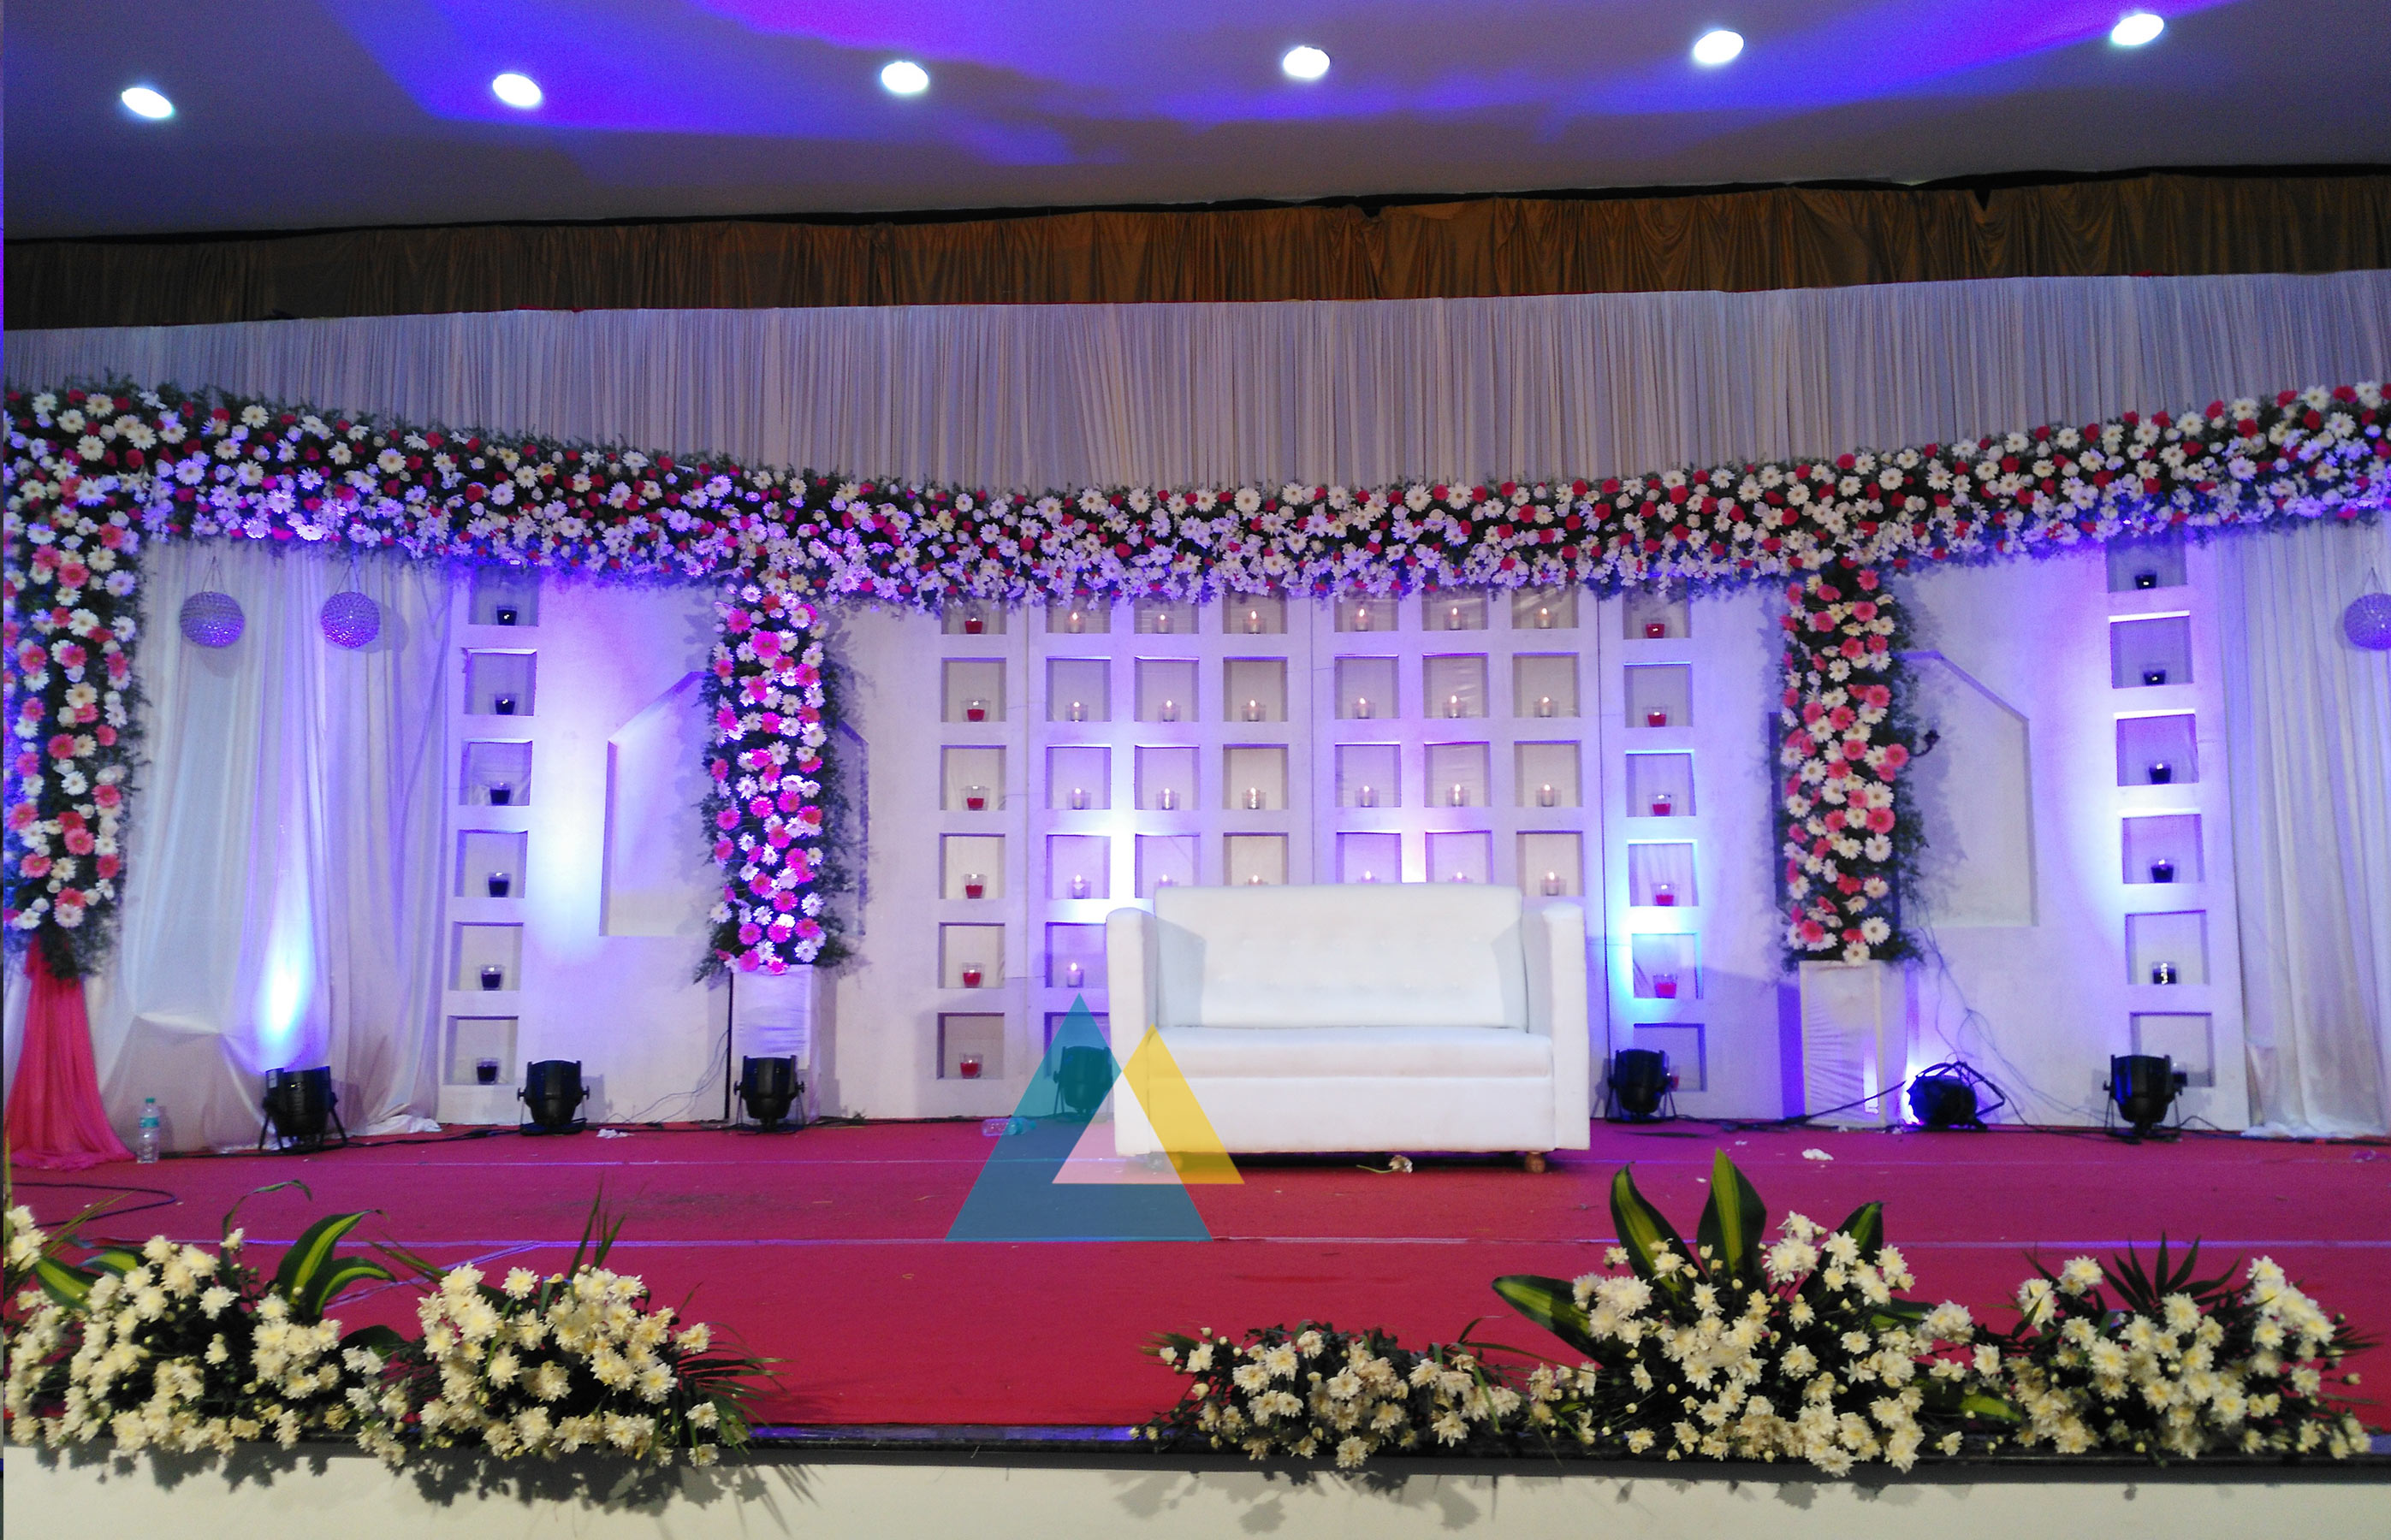 Wedding reception decoration done at bkn auditorium for Decoration decoration